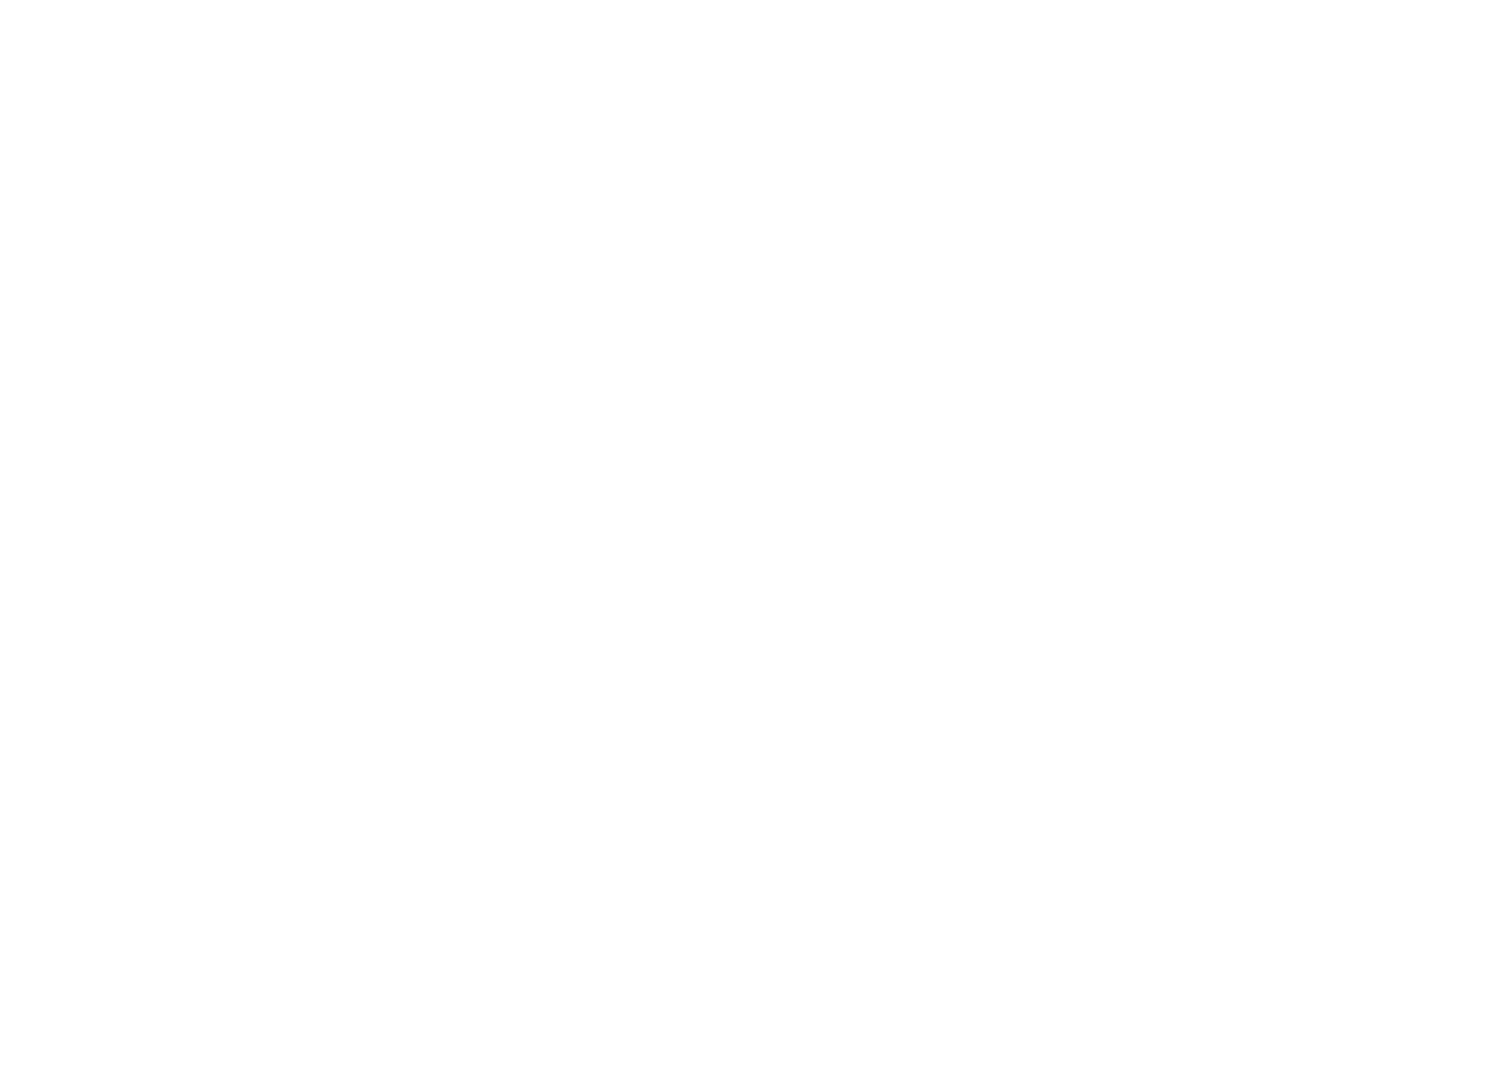 Universal by Nature